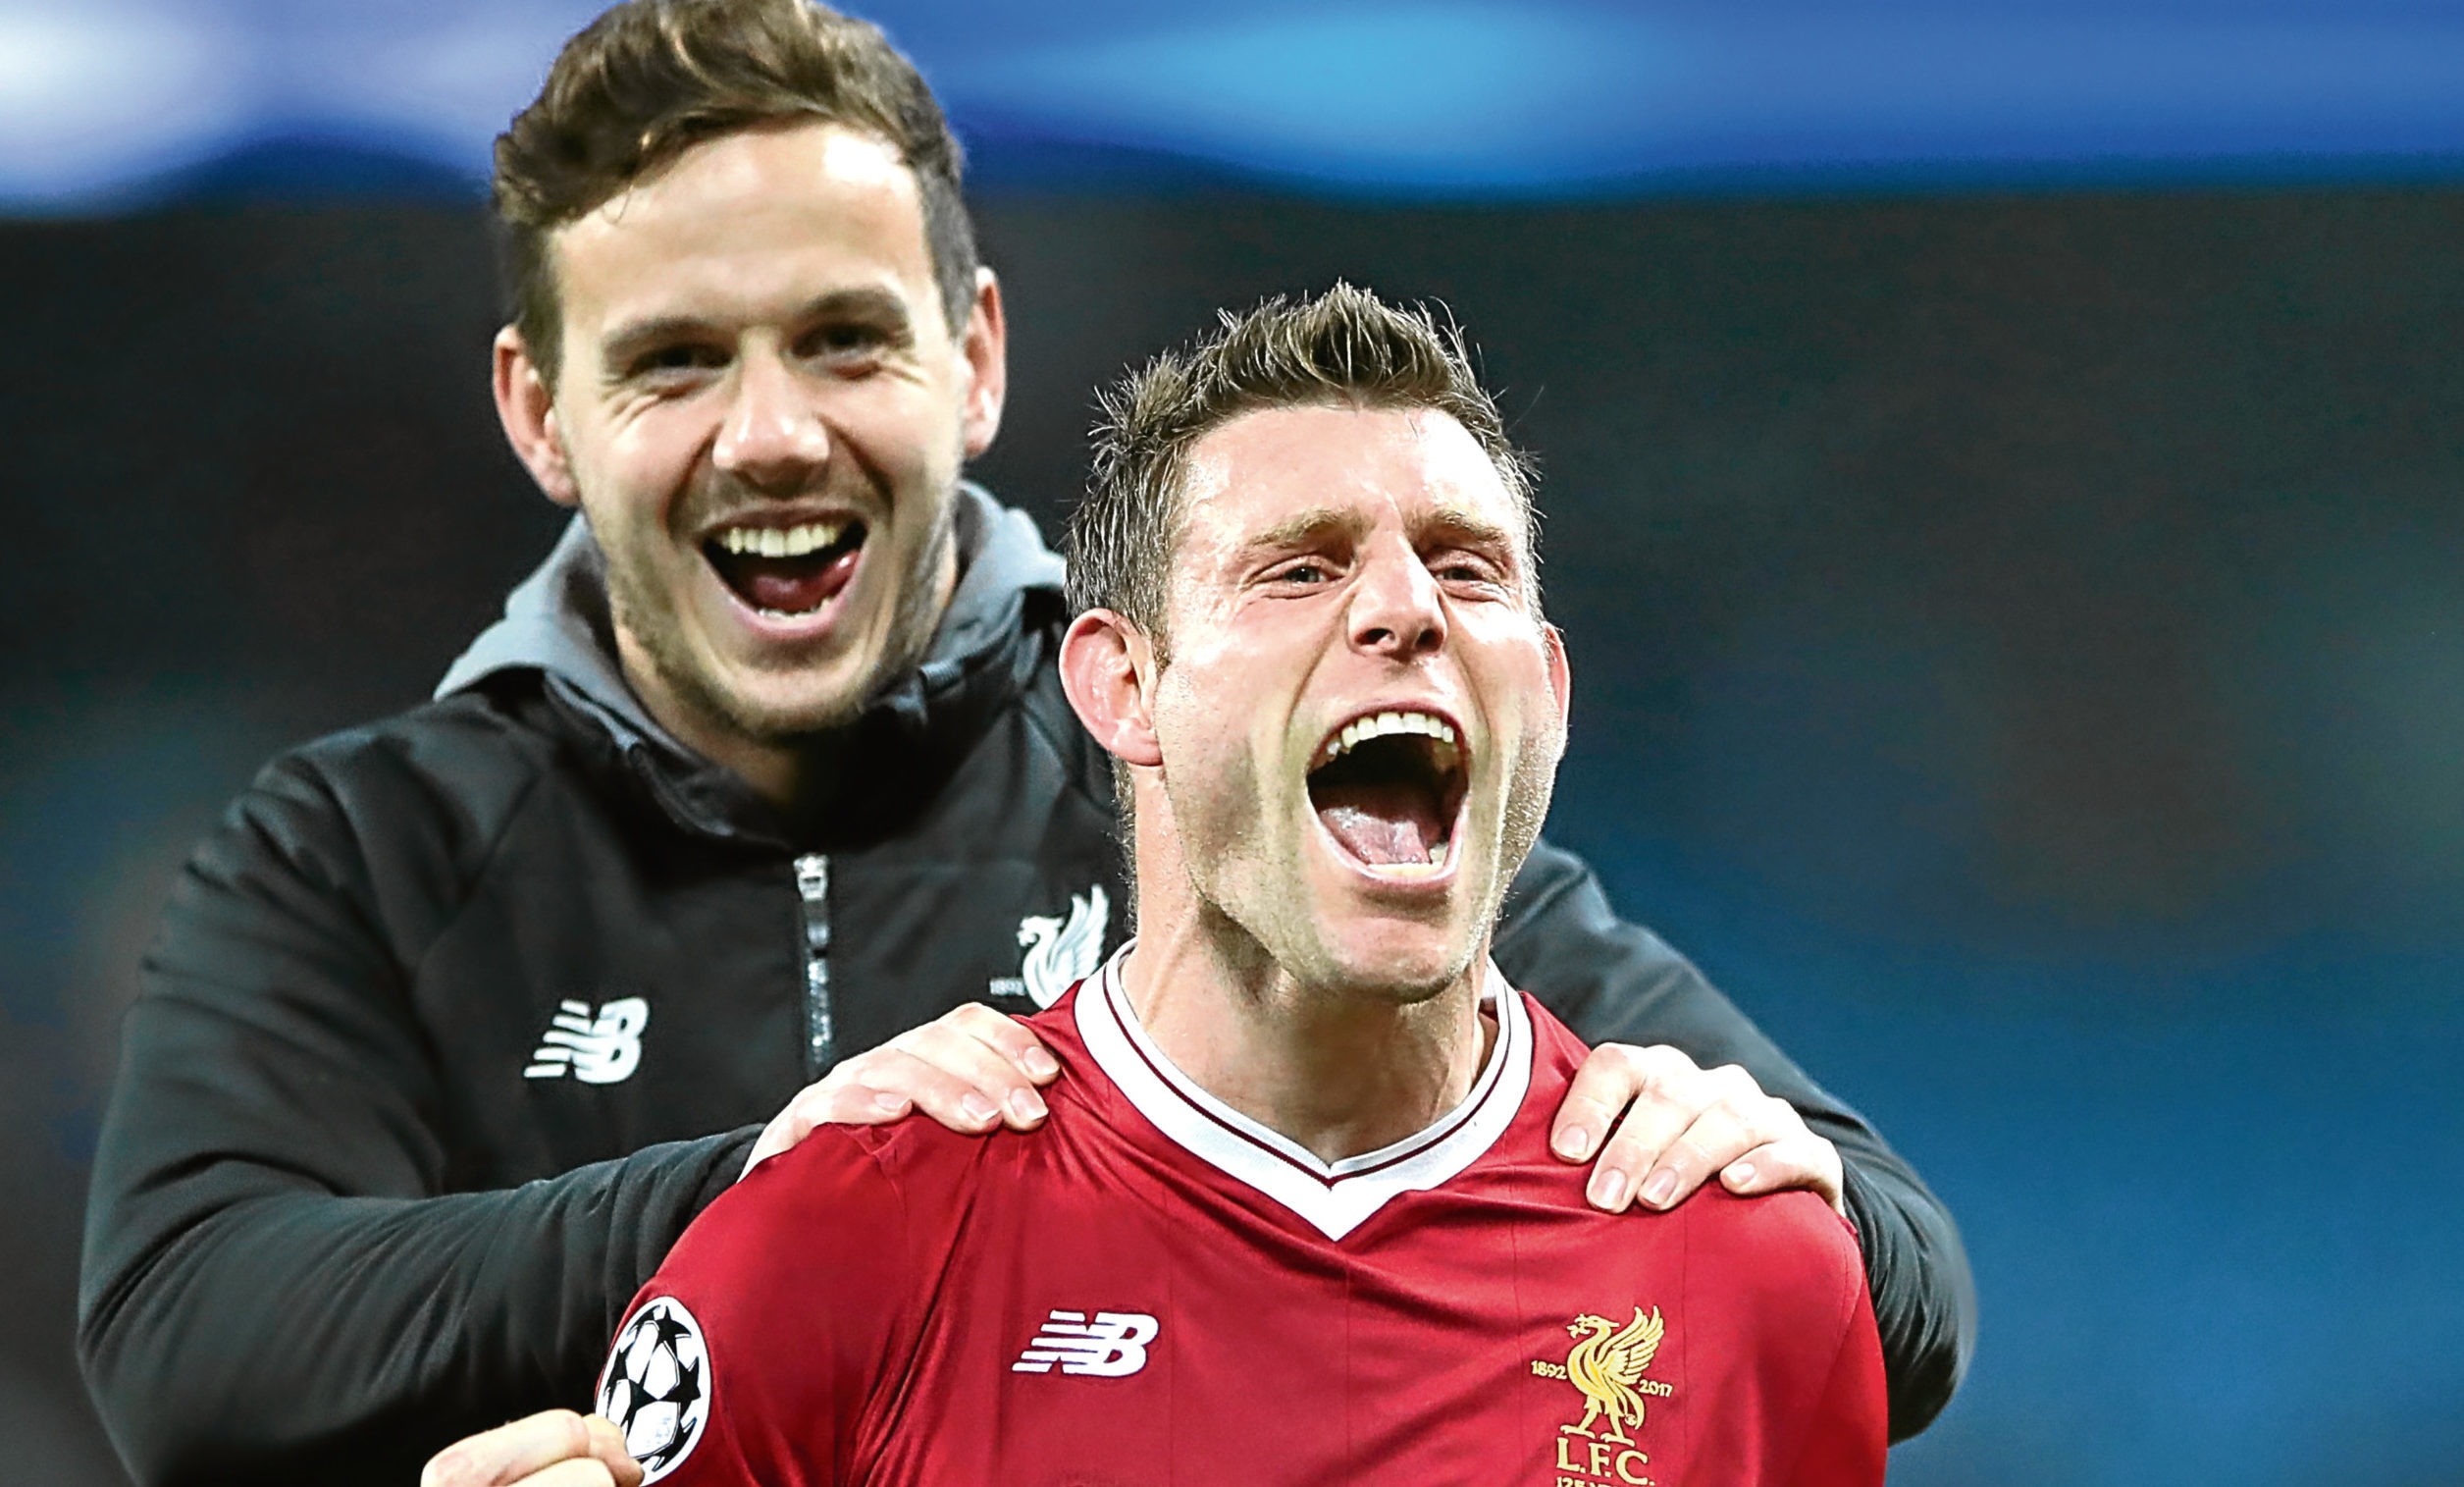 Liverpool's James Milner and Danny Ward celebrate victory after the Champions League, Quarter Final (Nick Potts/PA Wire)